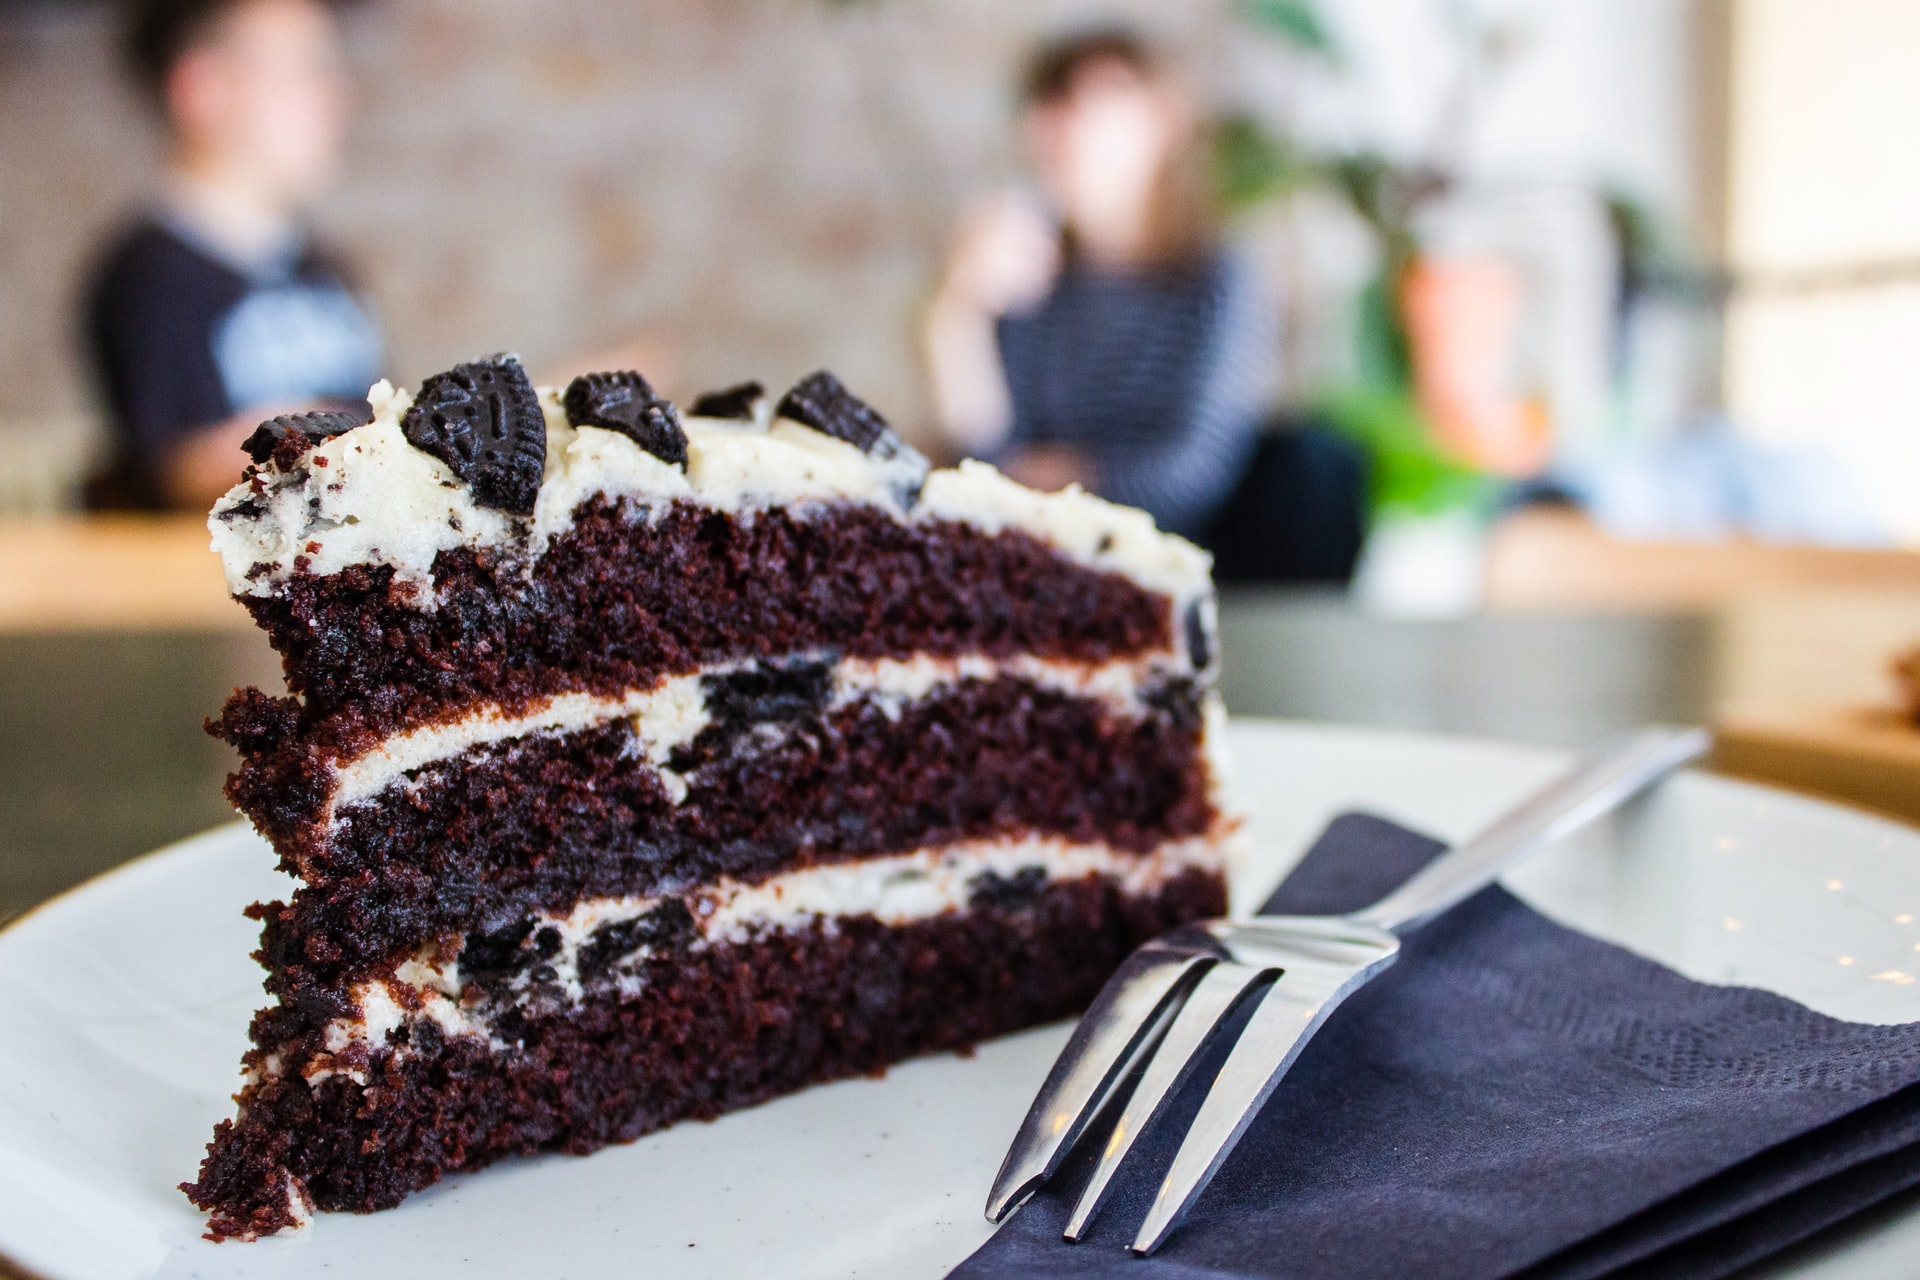 Delicious Cake Ideas To Impress Your Wife on Her Birthday